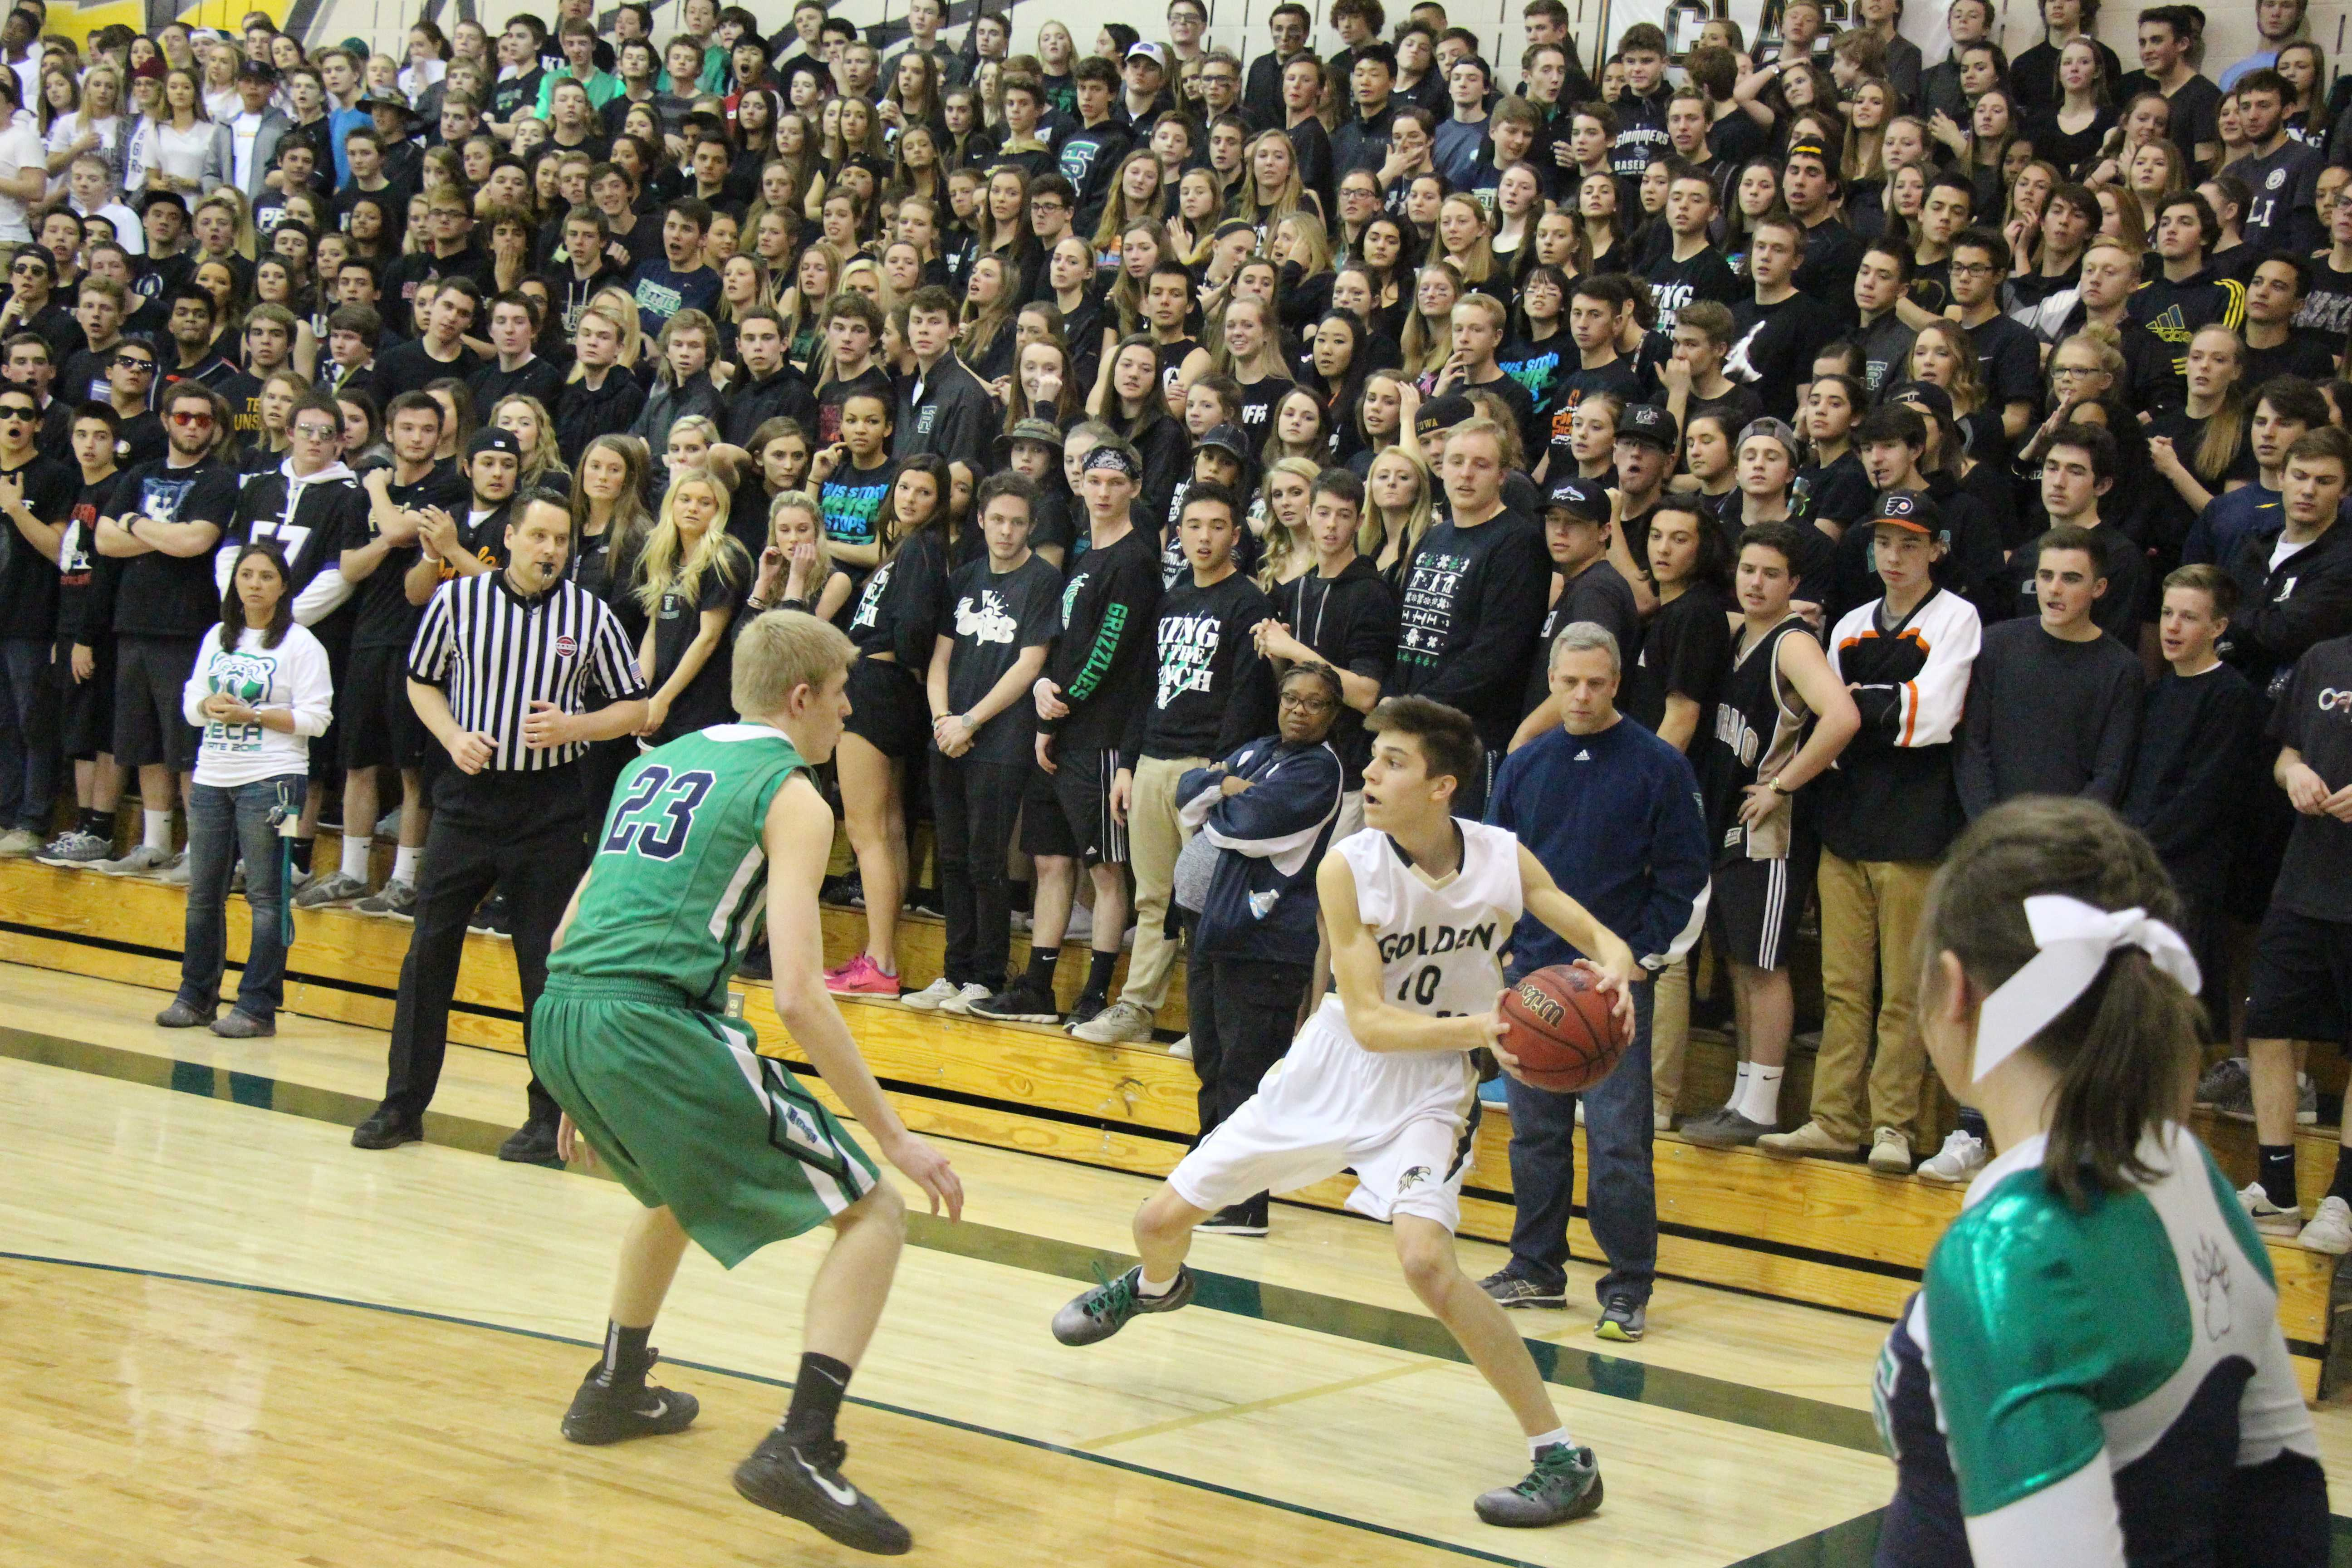 Mountain Vista Fails to Soar Above the Second Round of Playoffs